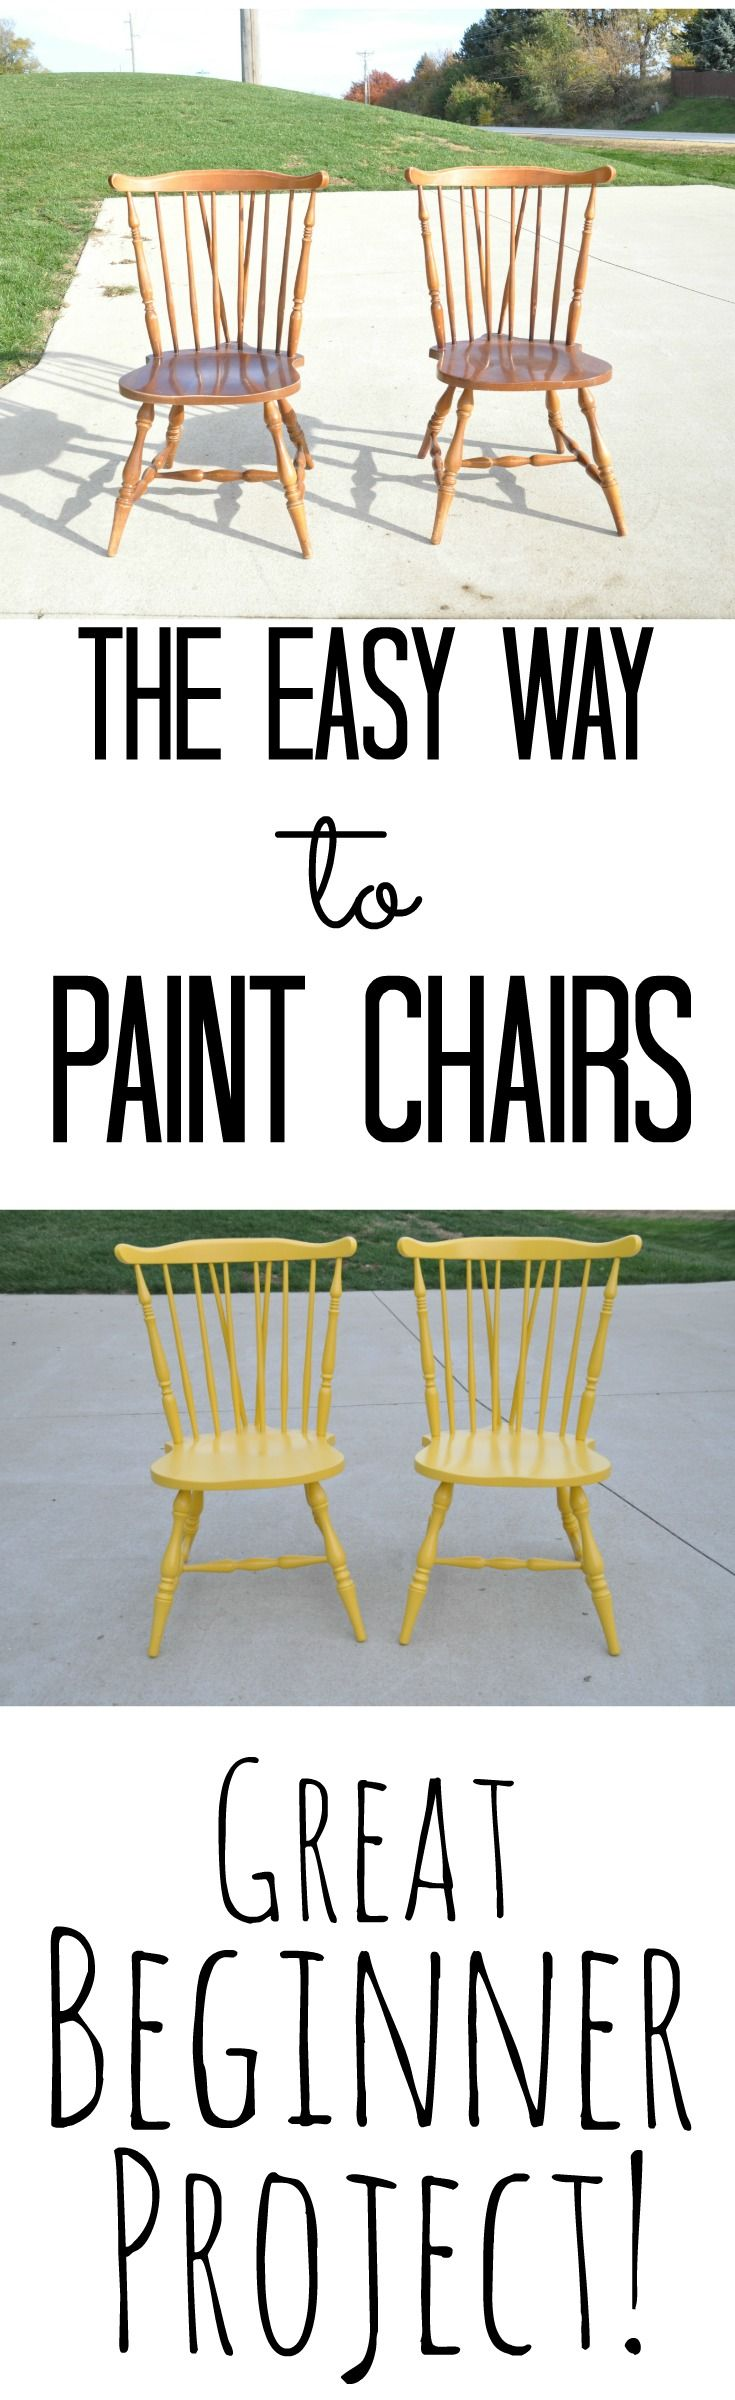 How to Paint Chairs the Easy Way